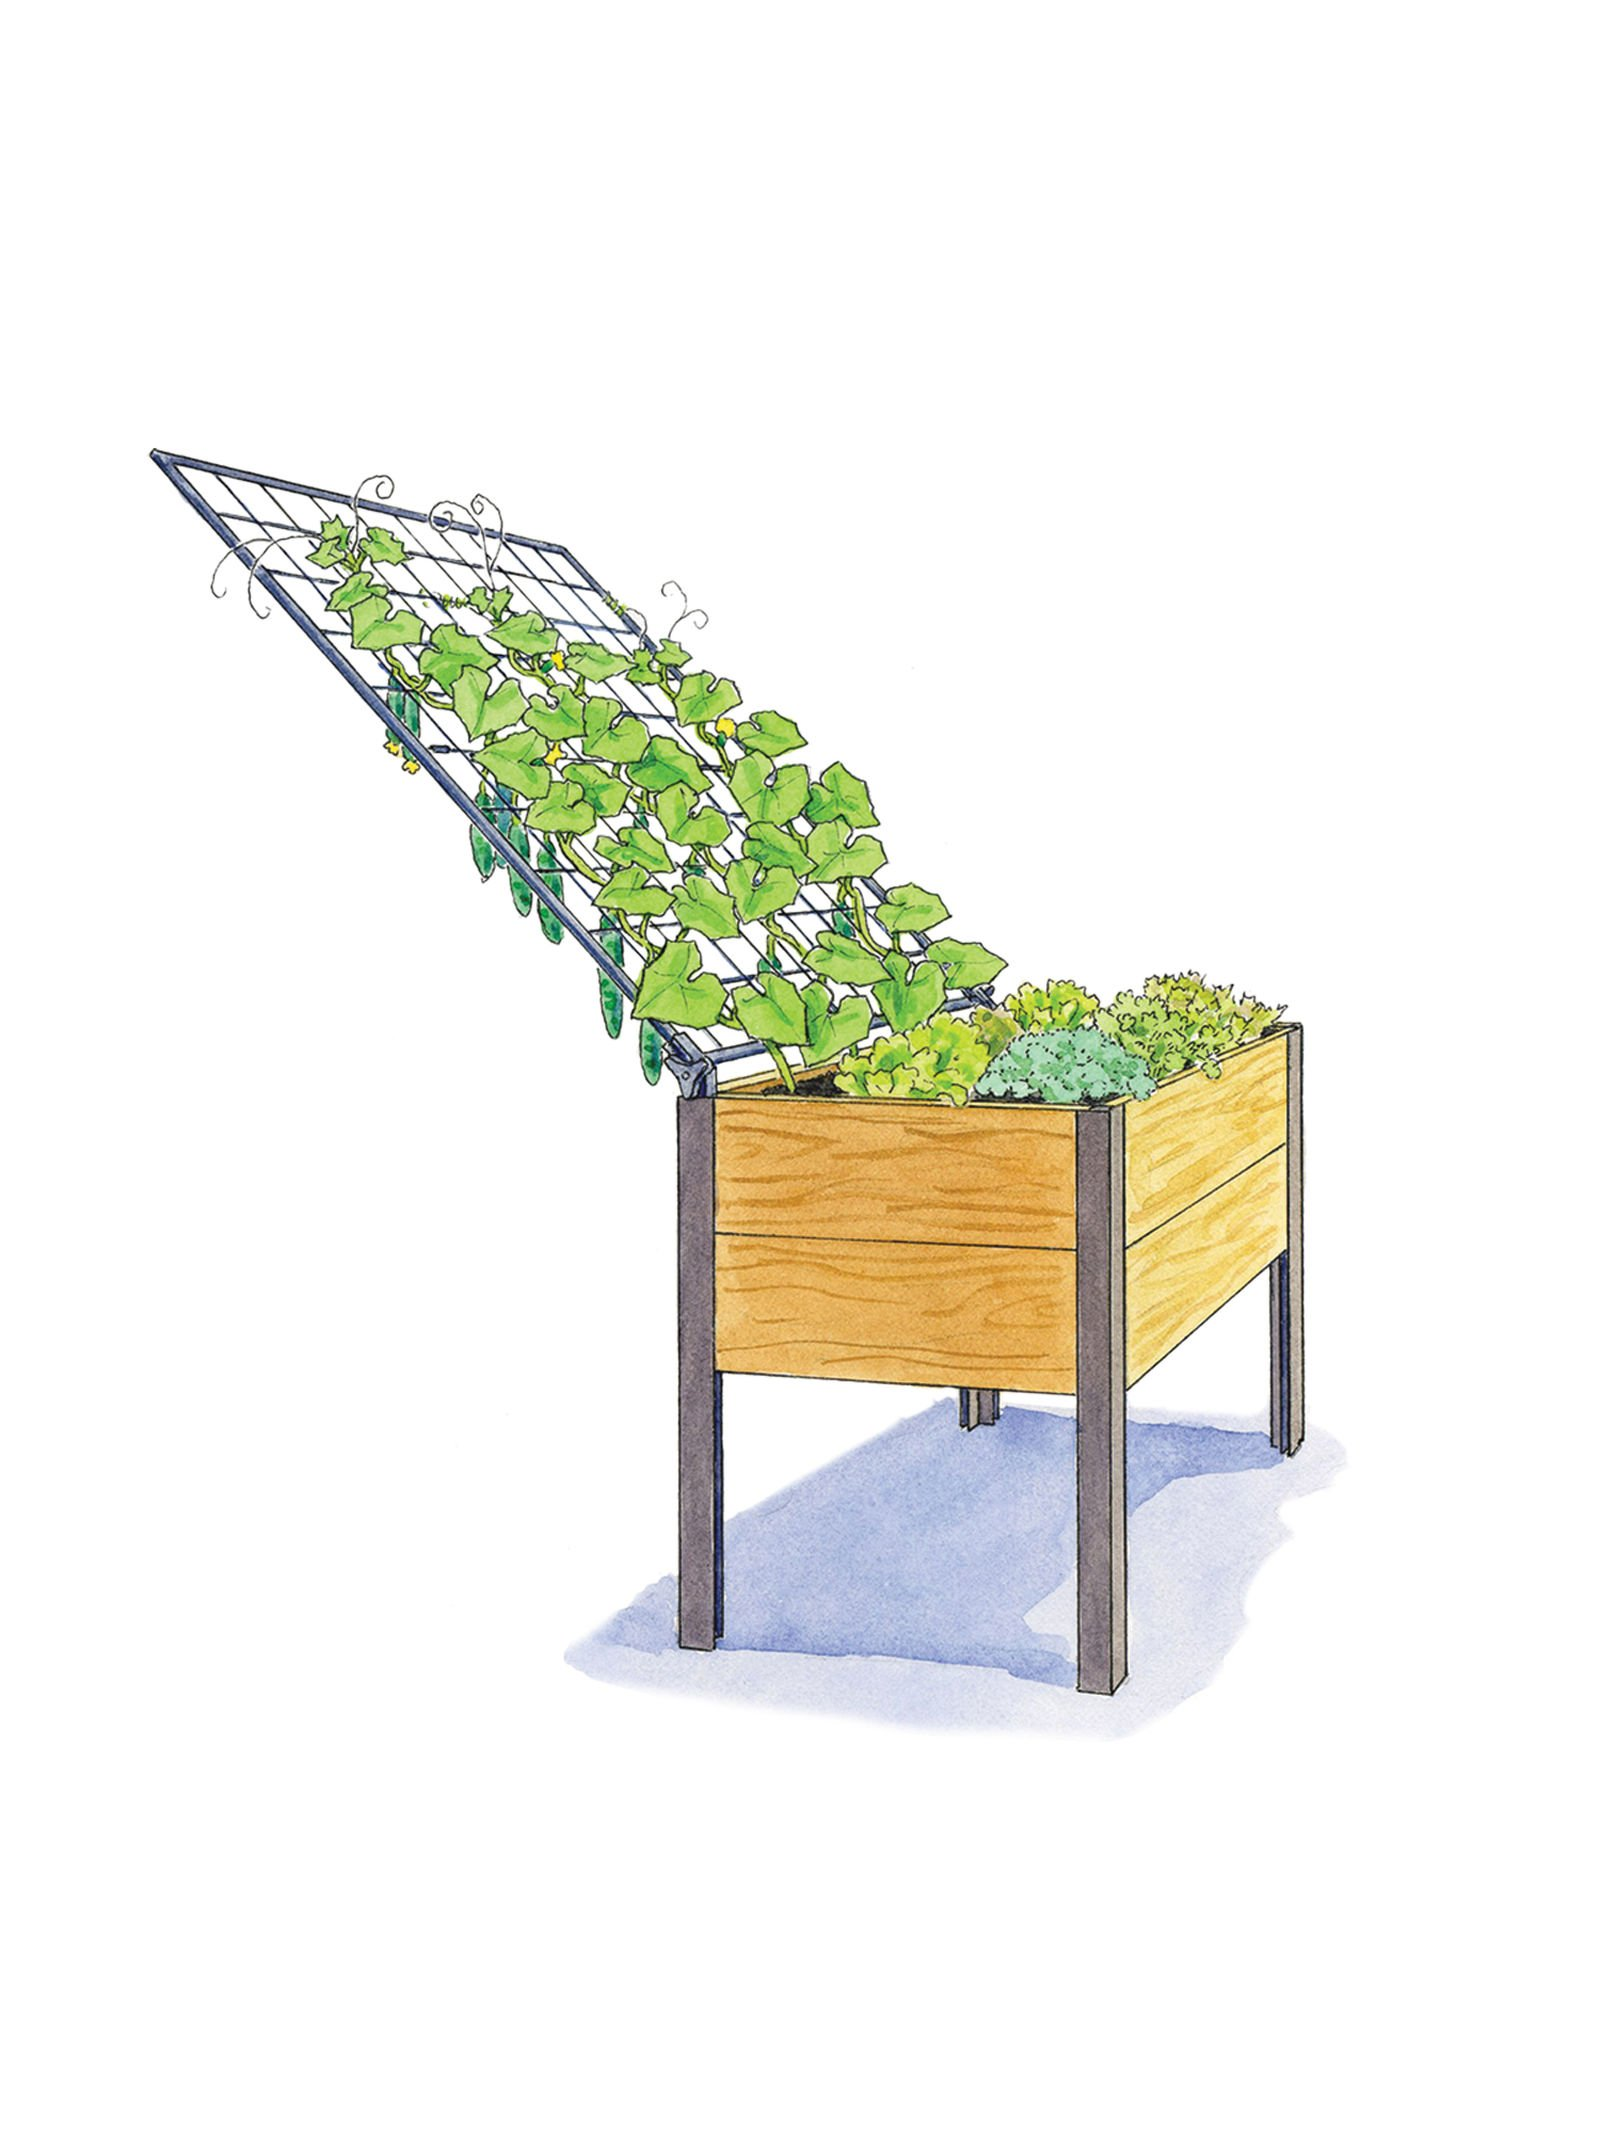 Elevated Cedar Planter Box and Space-Maker Pivoting Trellis Set, 28217; x 48217; by Gardener's Supply Company